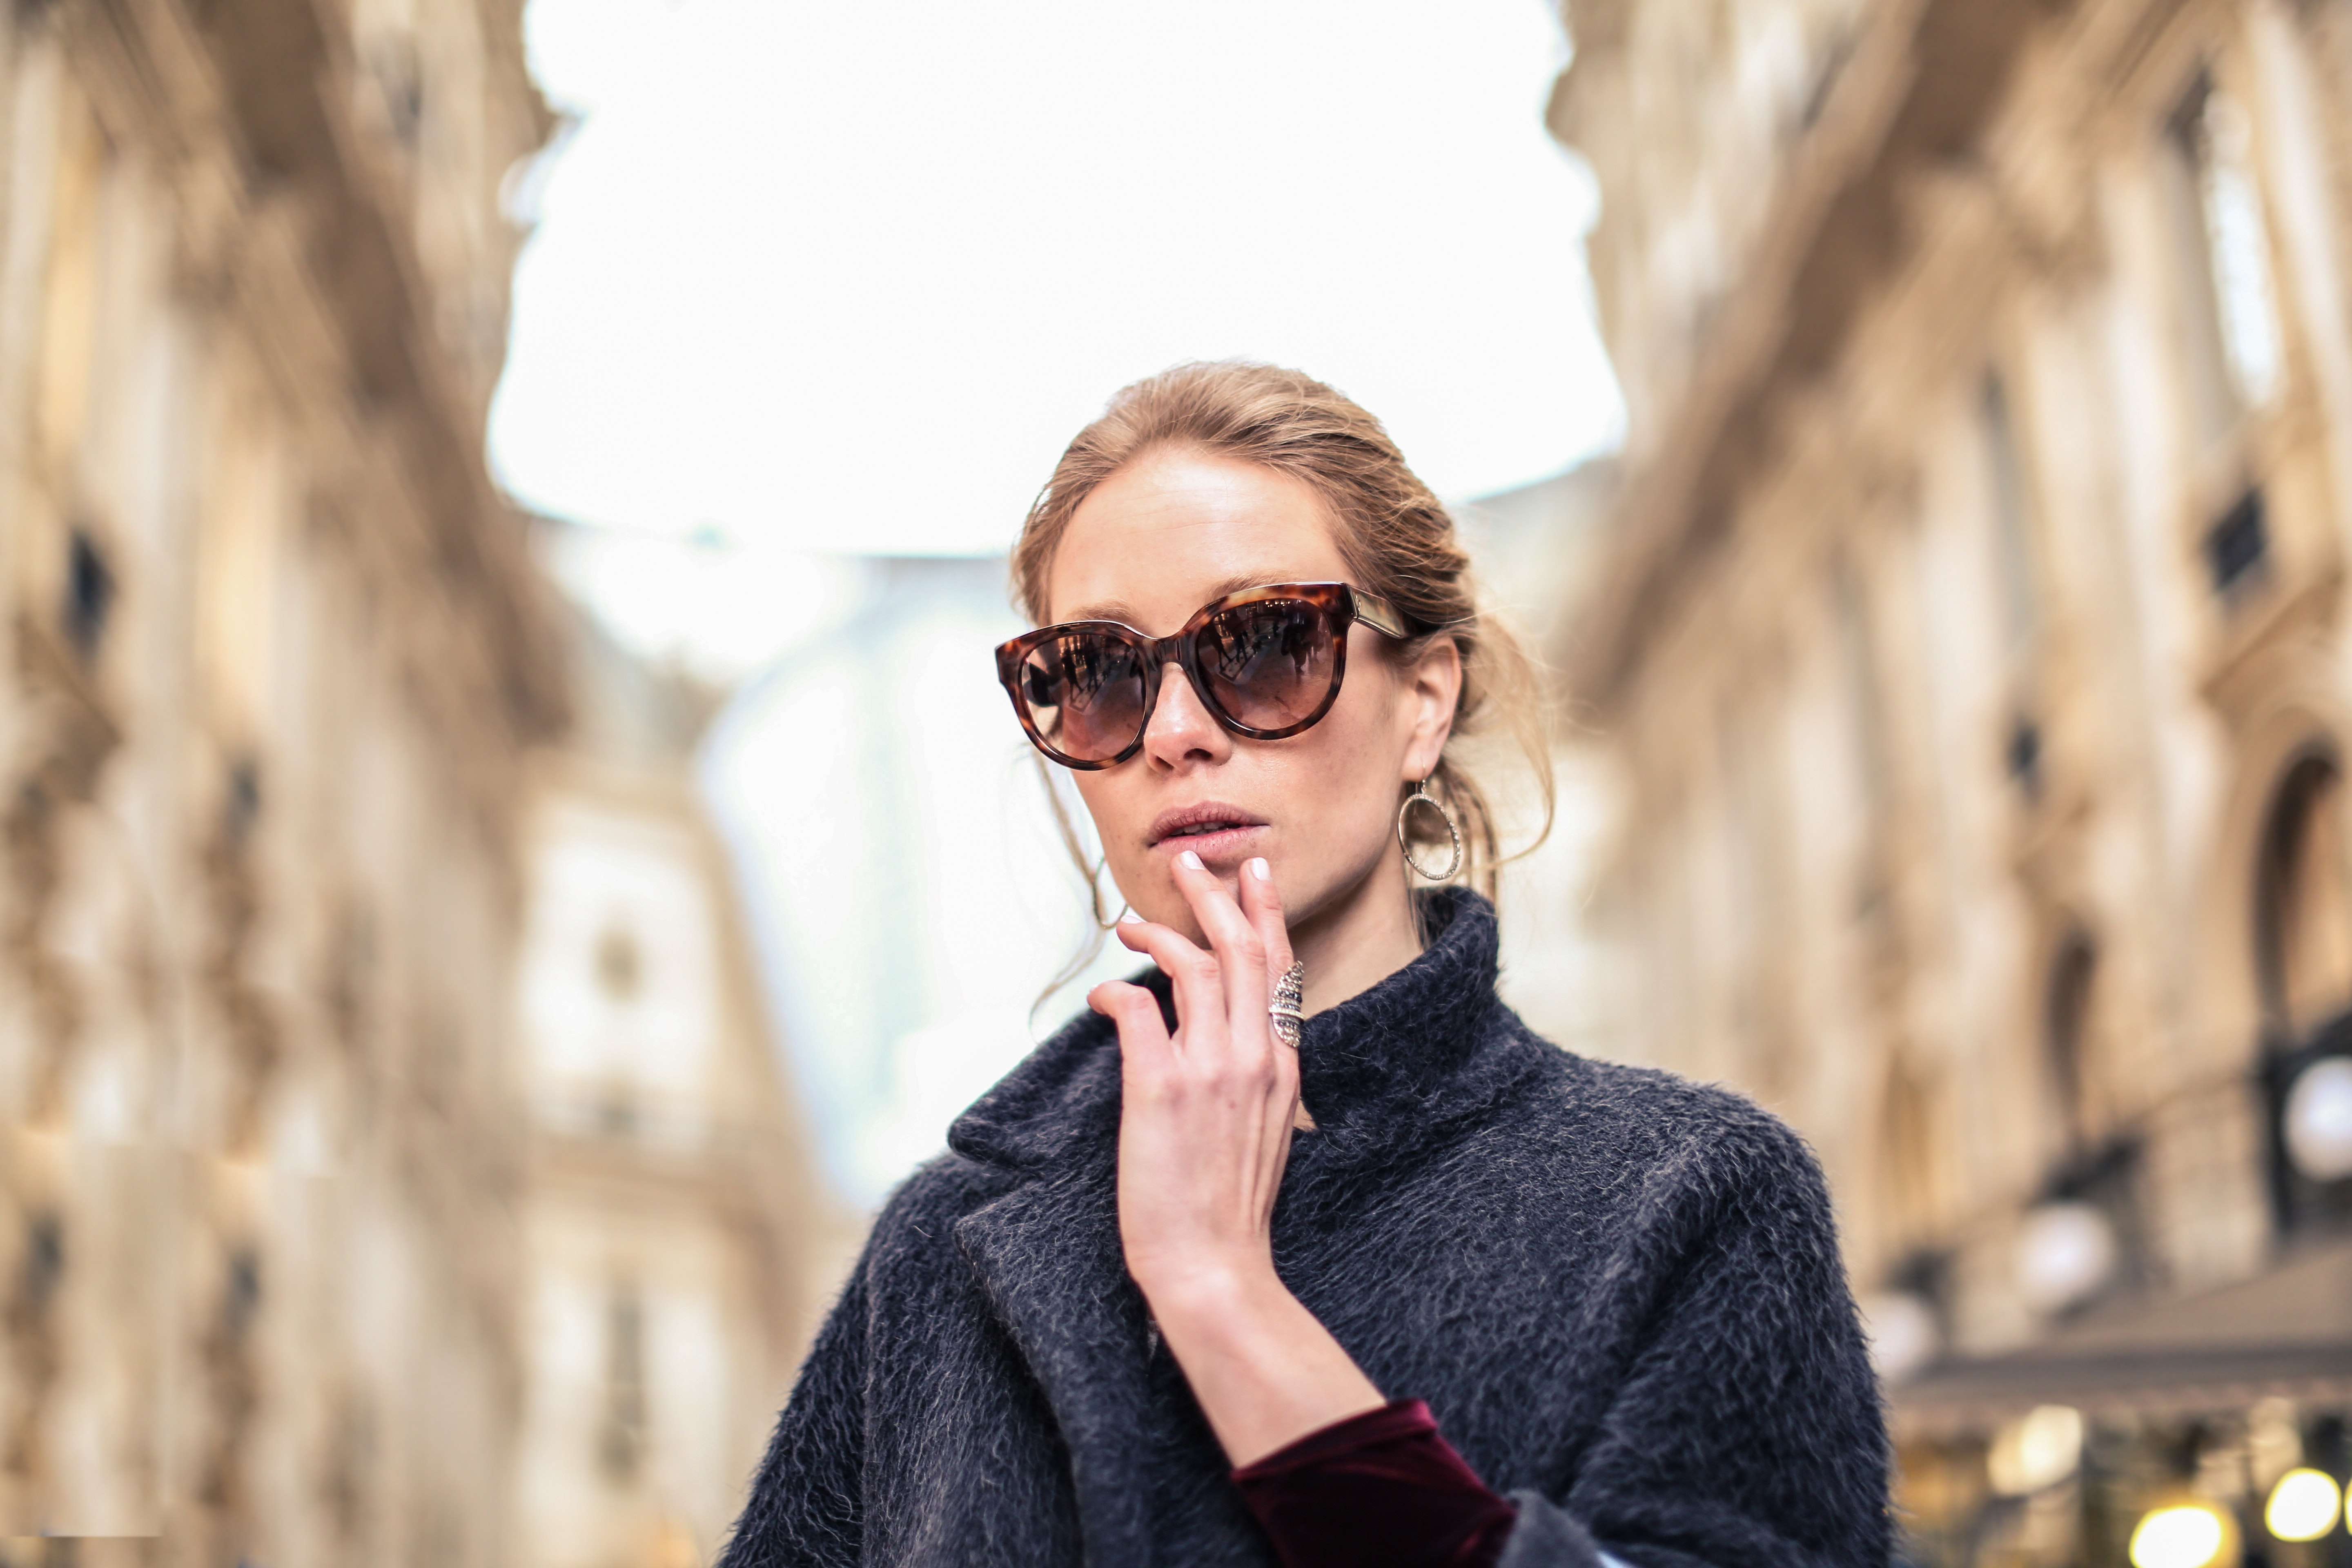 Woman wearing black coat and brown framed sunglasses photo